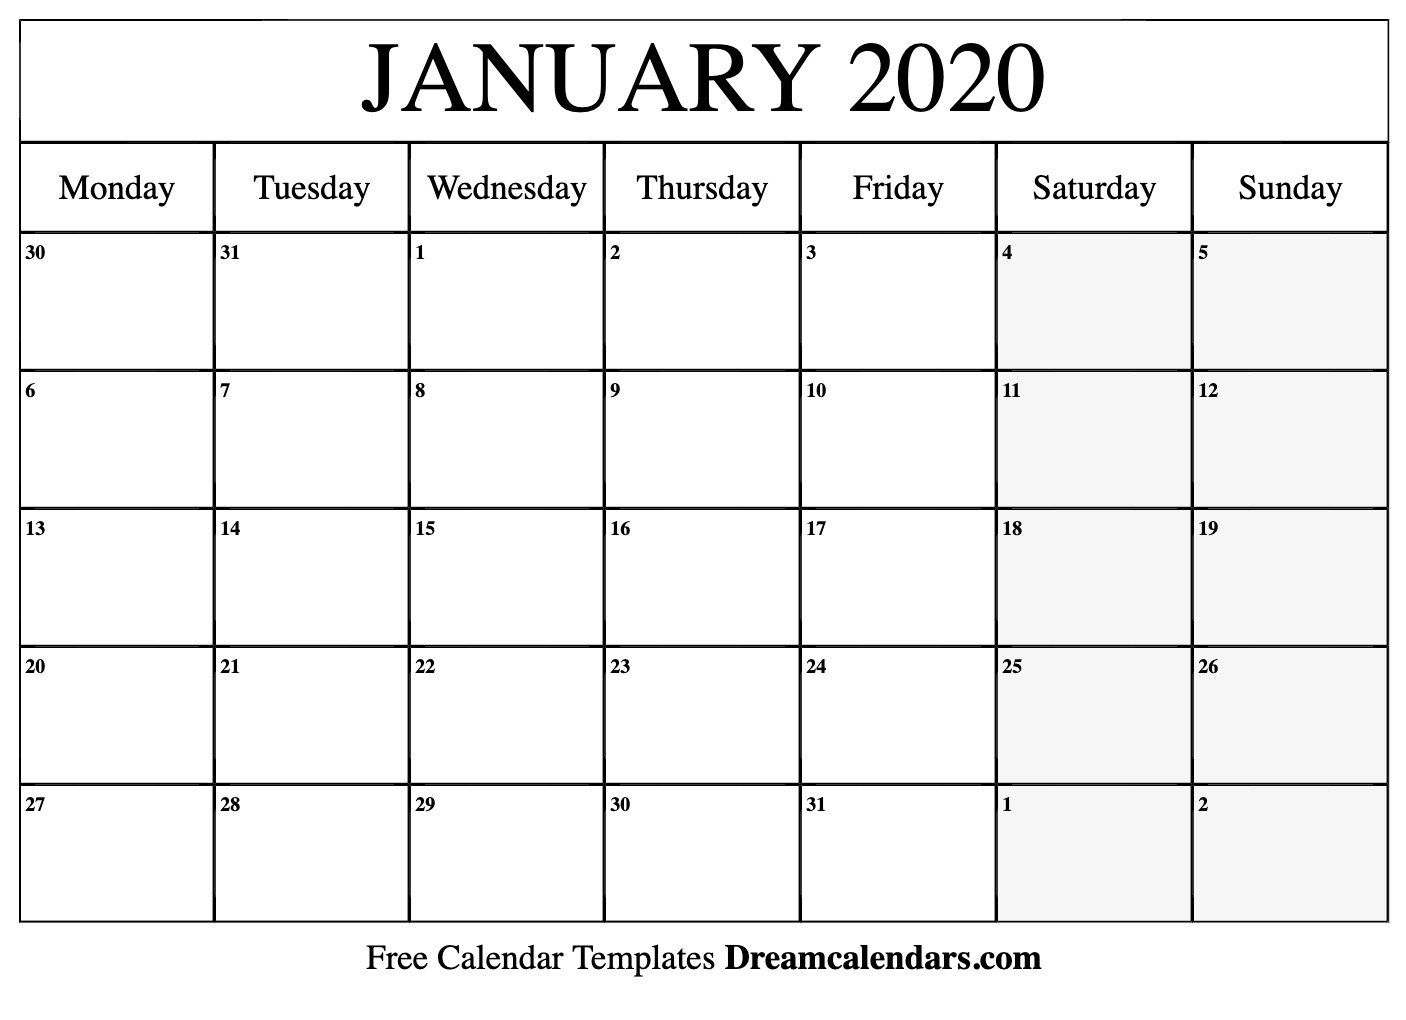 024 Free Excel Calendar Template January Incredible 2020